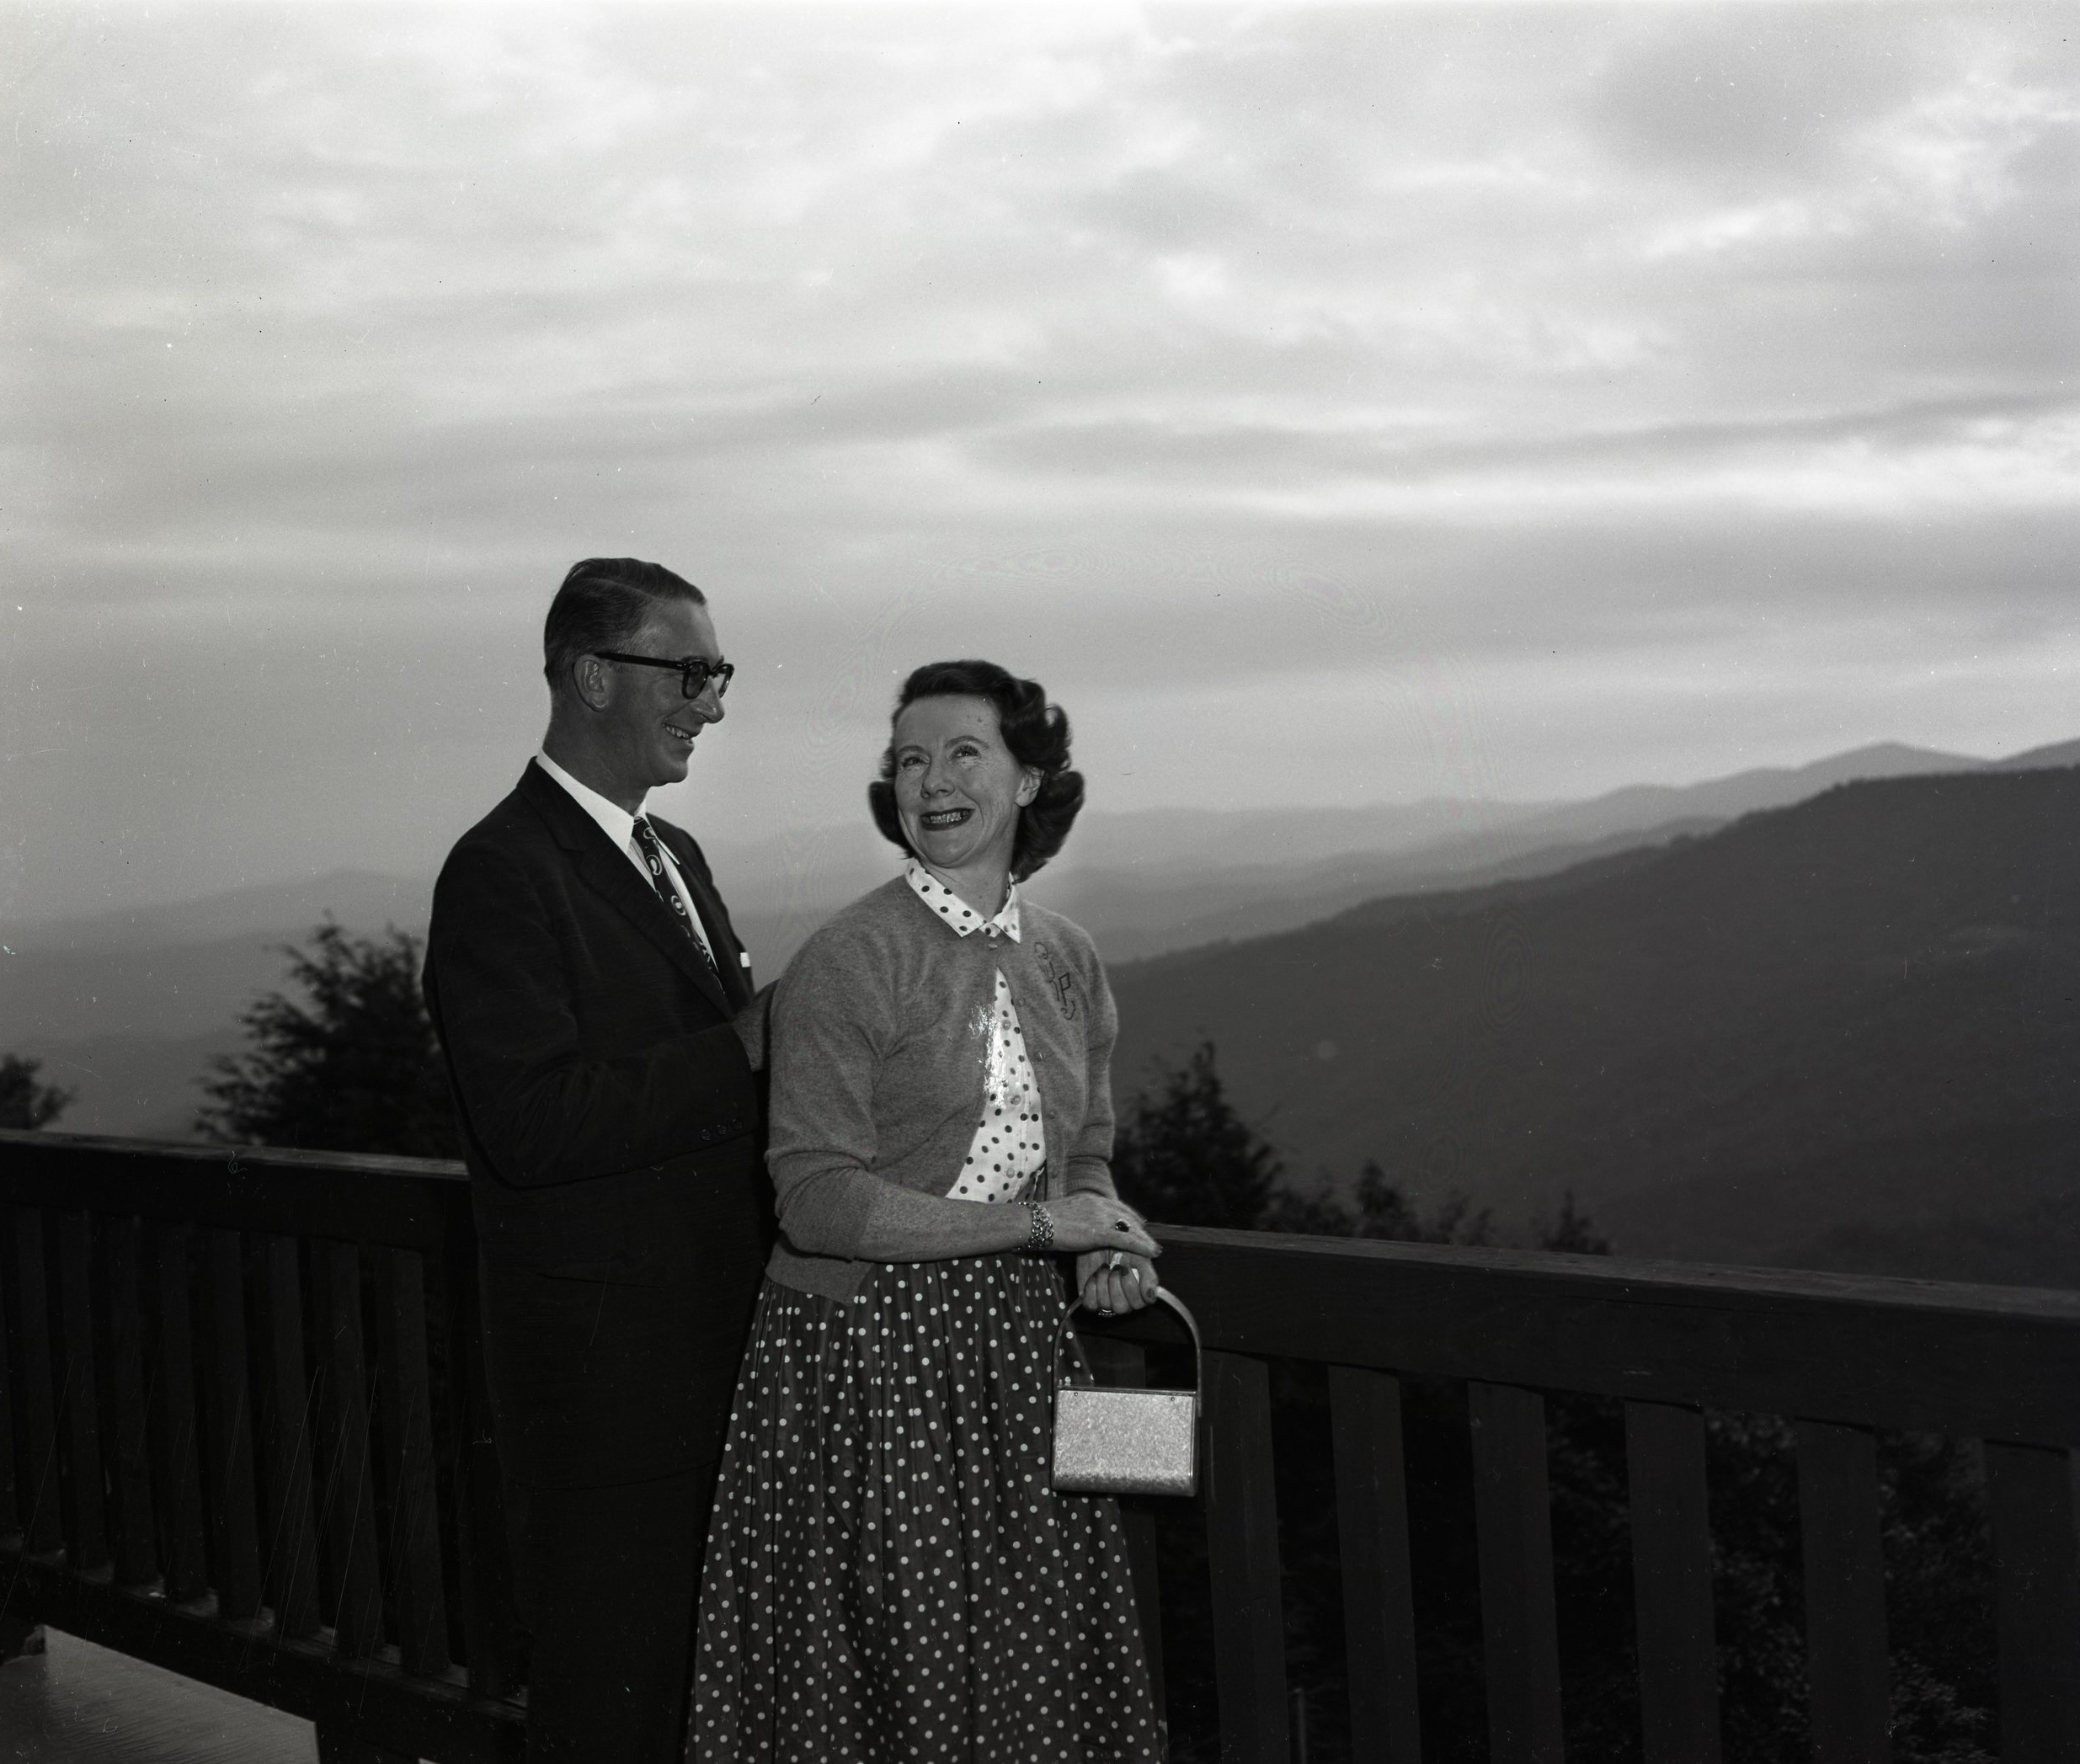 Senator Estes Kefauver (D-TN) and his wife Nancy vacation at Mayview Manor in Blowing Rock, NC, in August 1956. This image was shot by Palmer Blair and appears in the forthcoming Palmer Blair Collection of the Digital Watauga Project, which will be available online beginning next week.